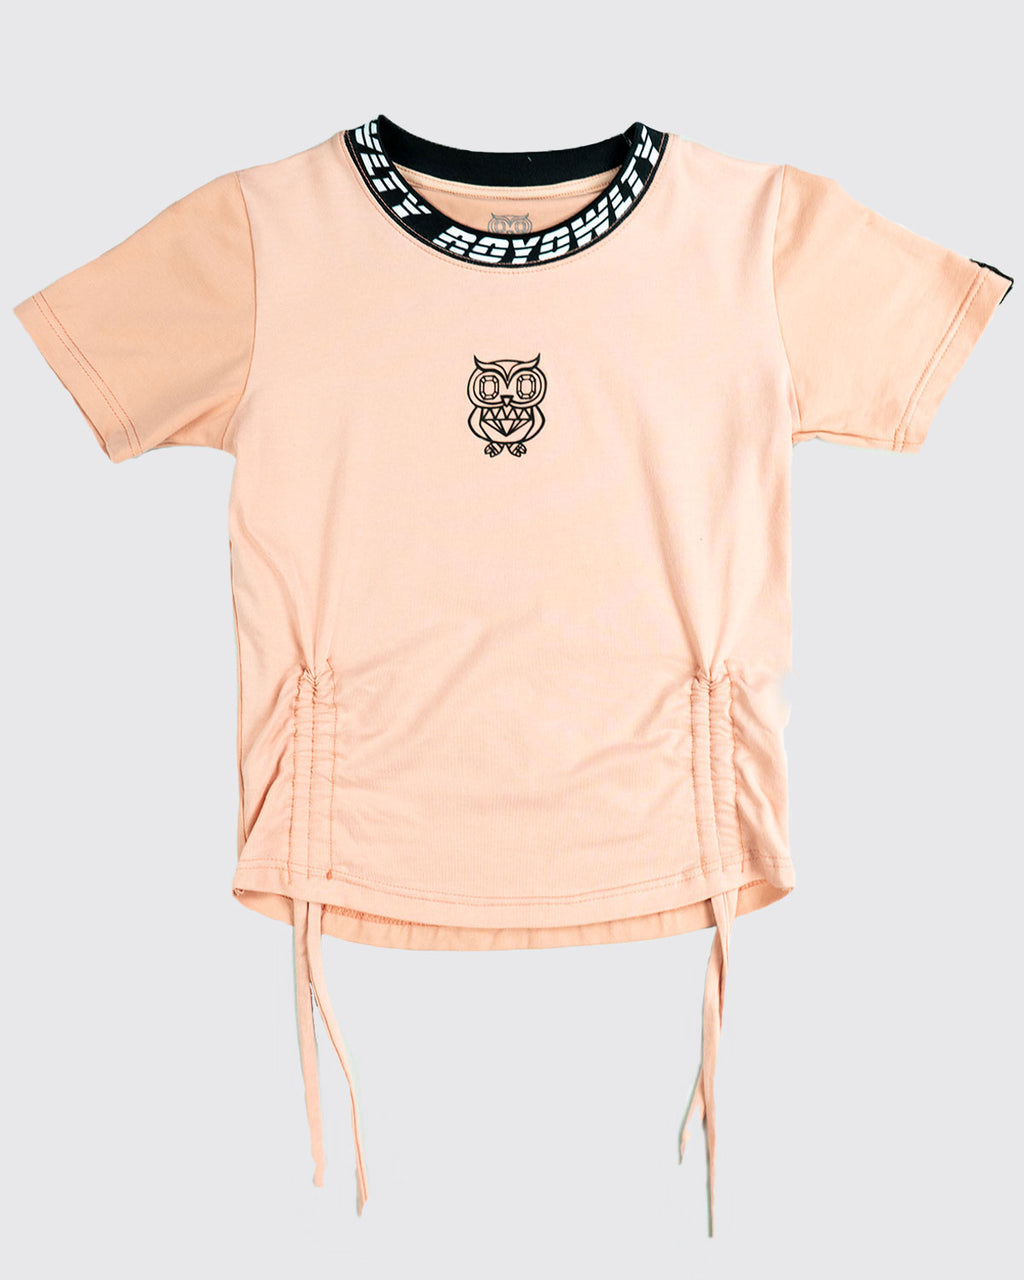 Neck print Logo Crop Tee with 3D logo -Short sleeve